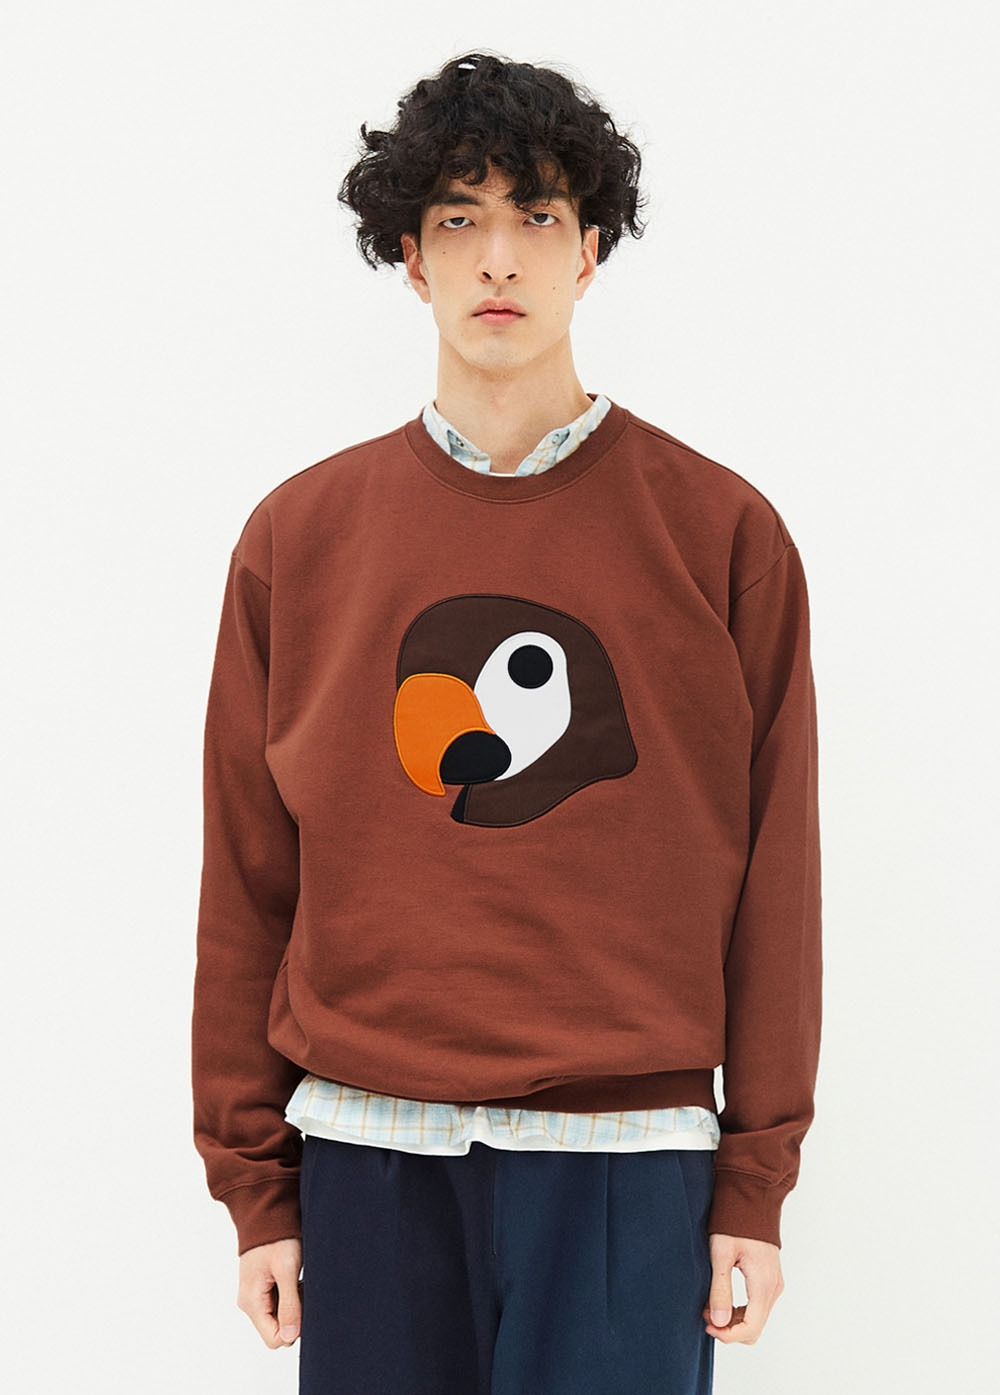 KANCO APPLIQUE SWEATSHIRT brown